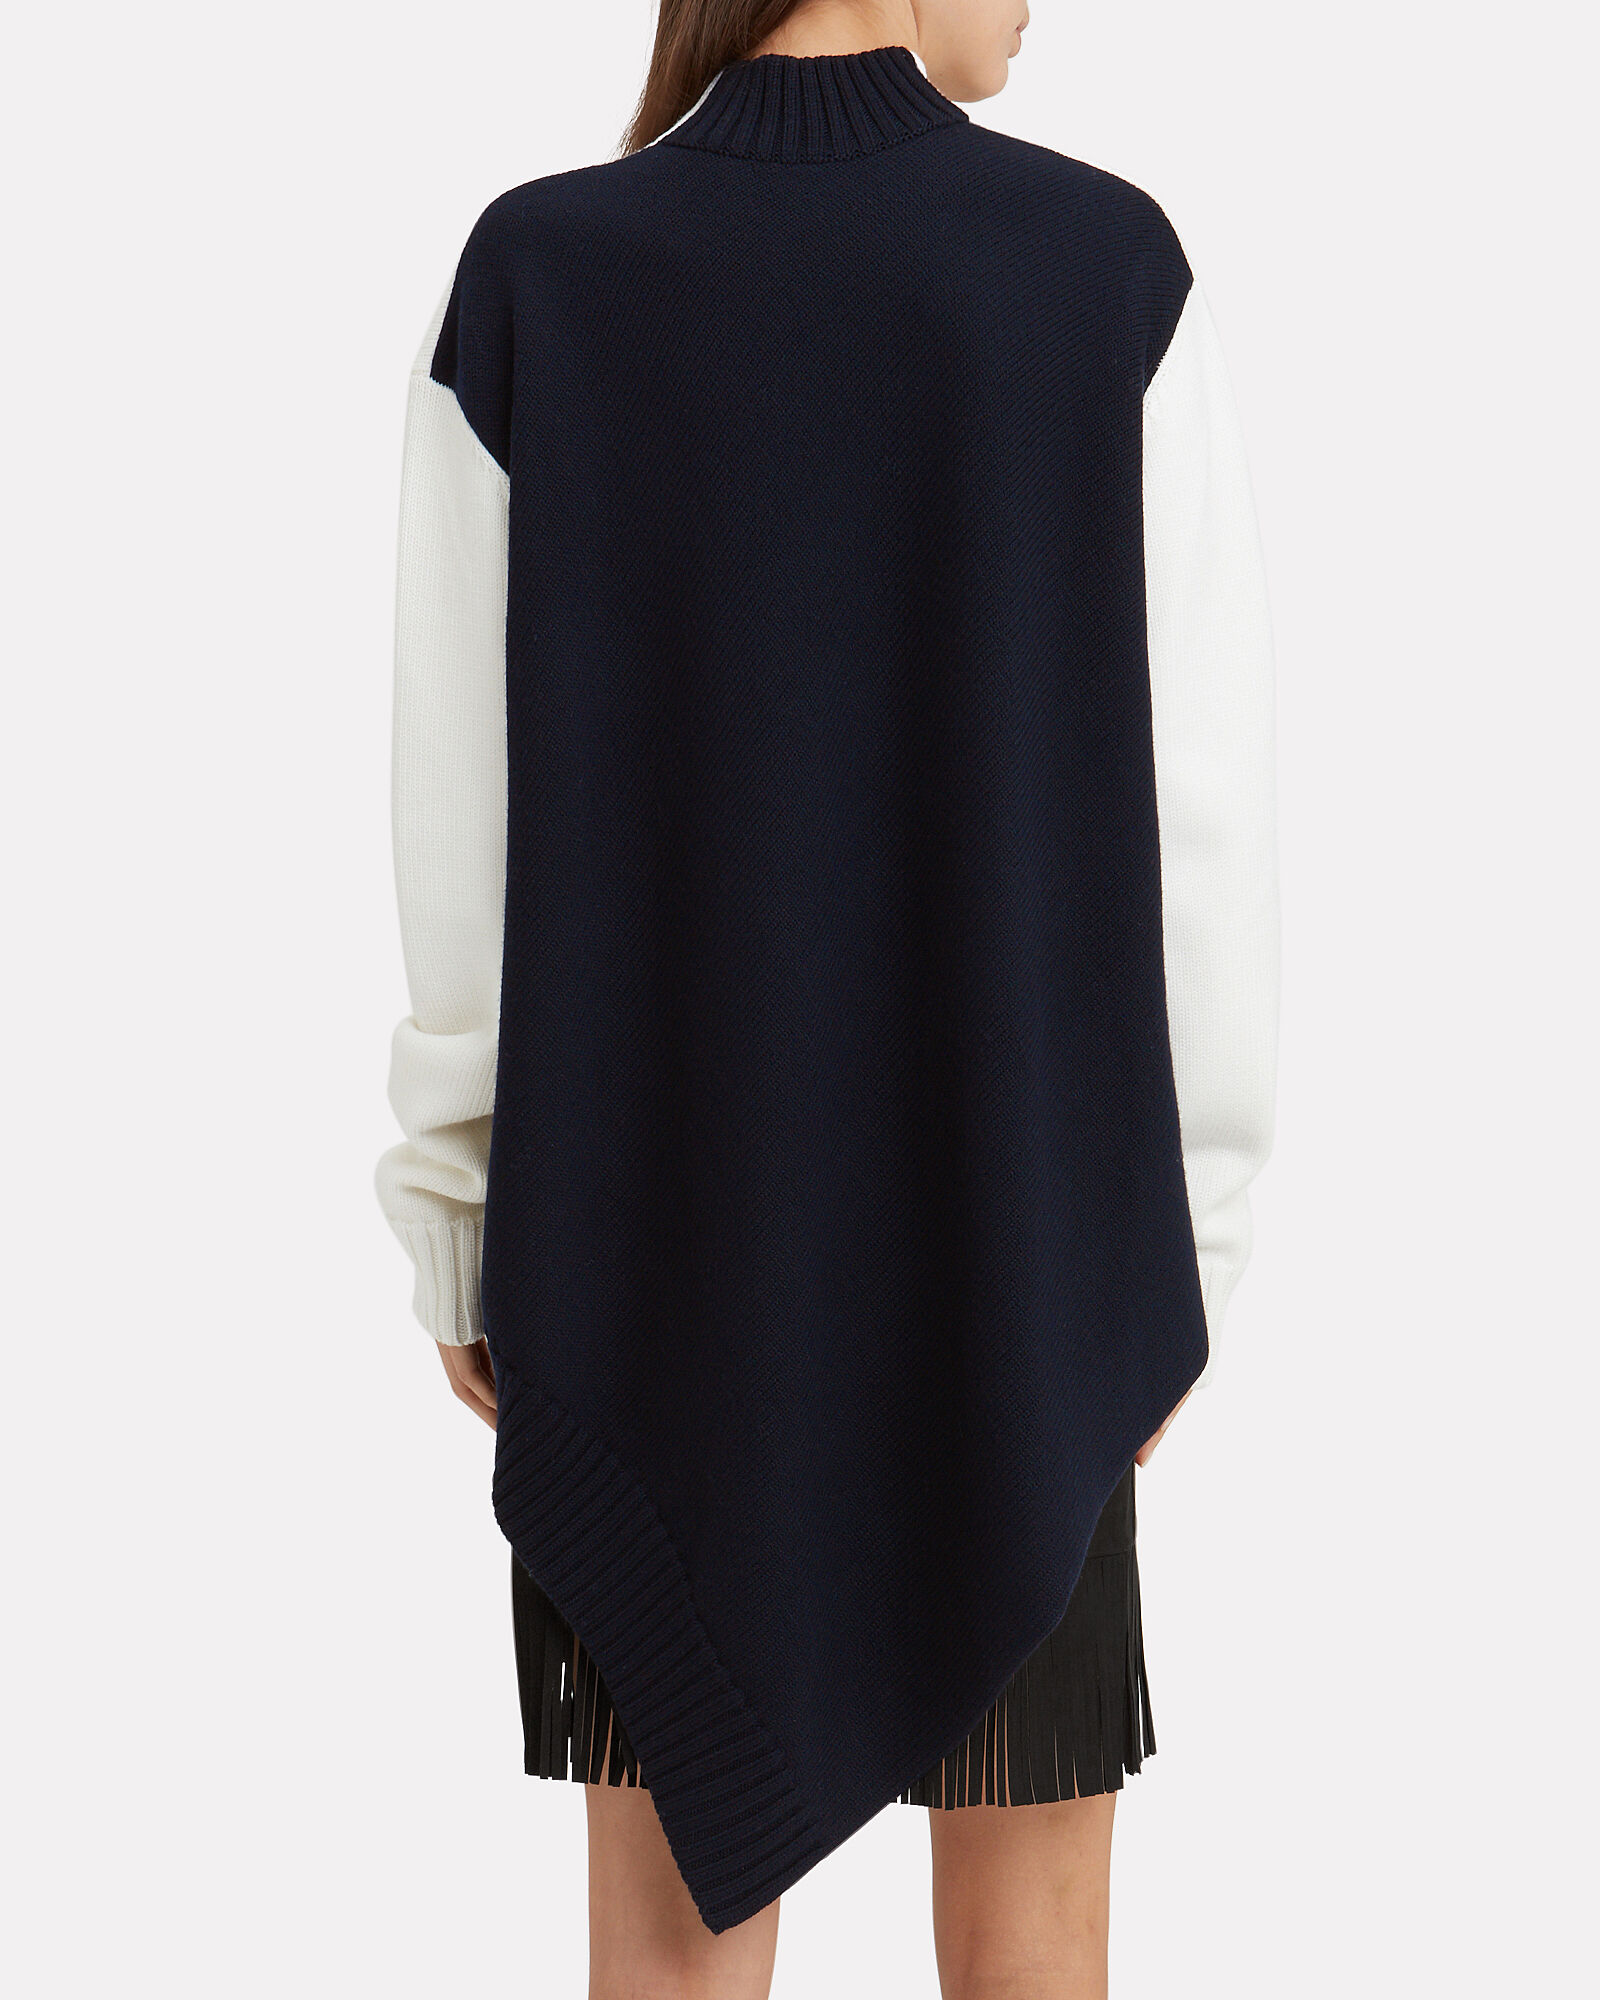 Cape Back Two-Tone Sweater, NAVY, hi-res